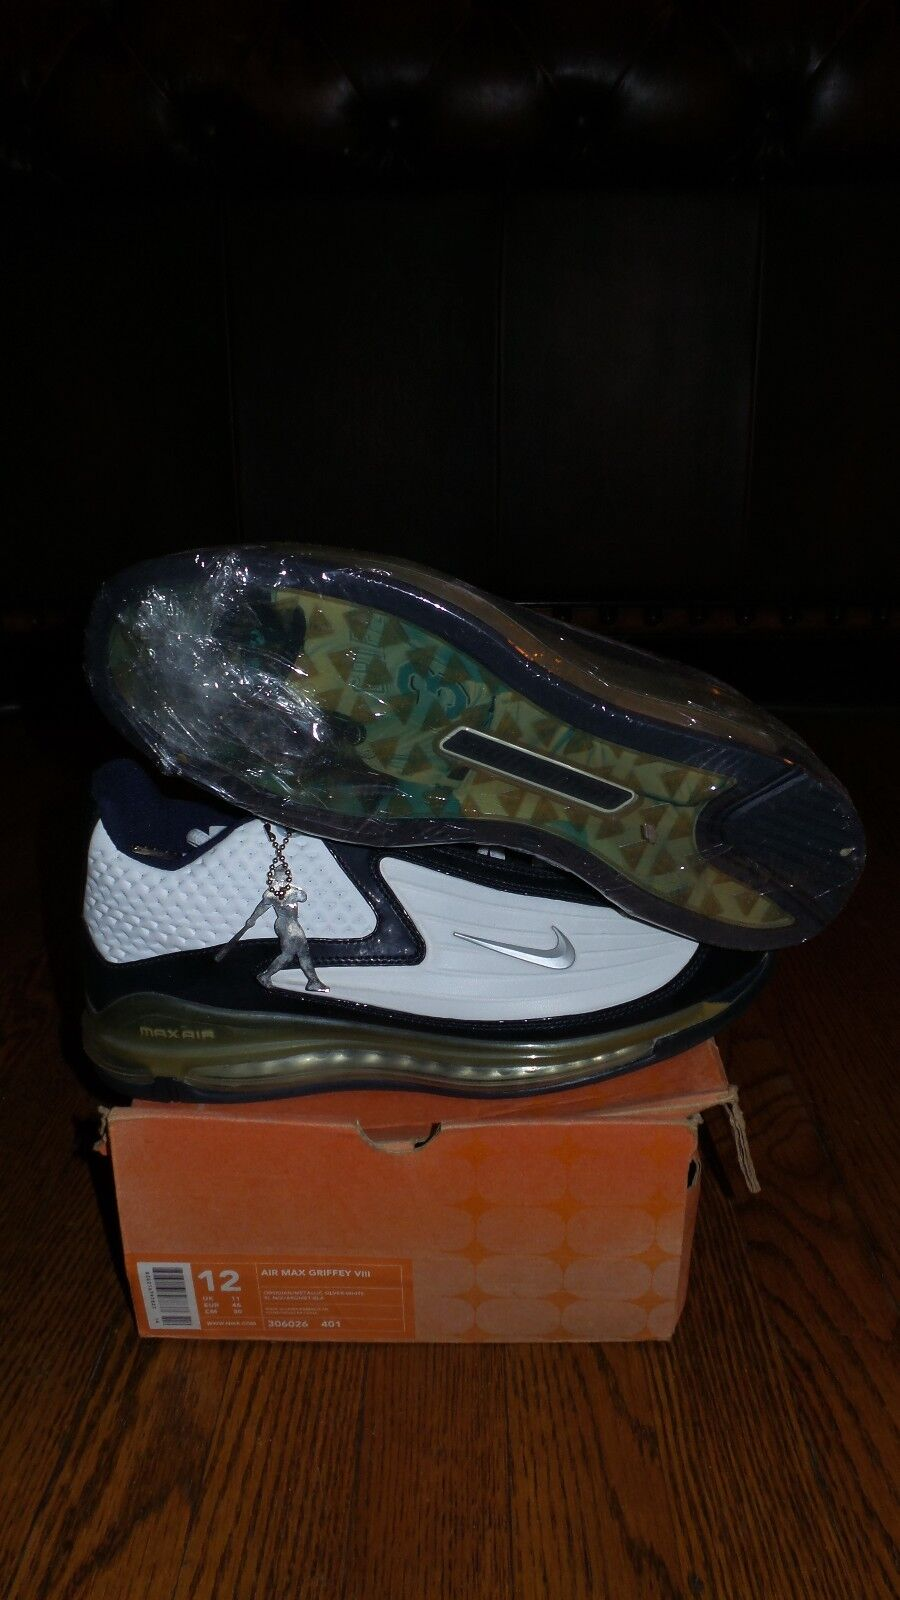 Og 306026-401 nike air max griffin 8 w / griffin sz12, nuovo emblema (2003)